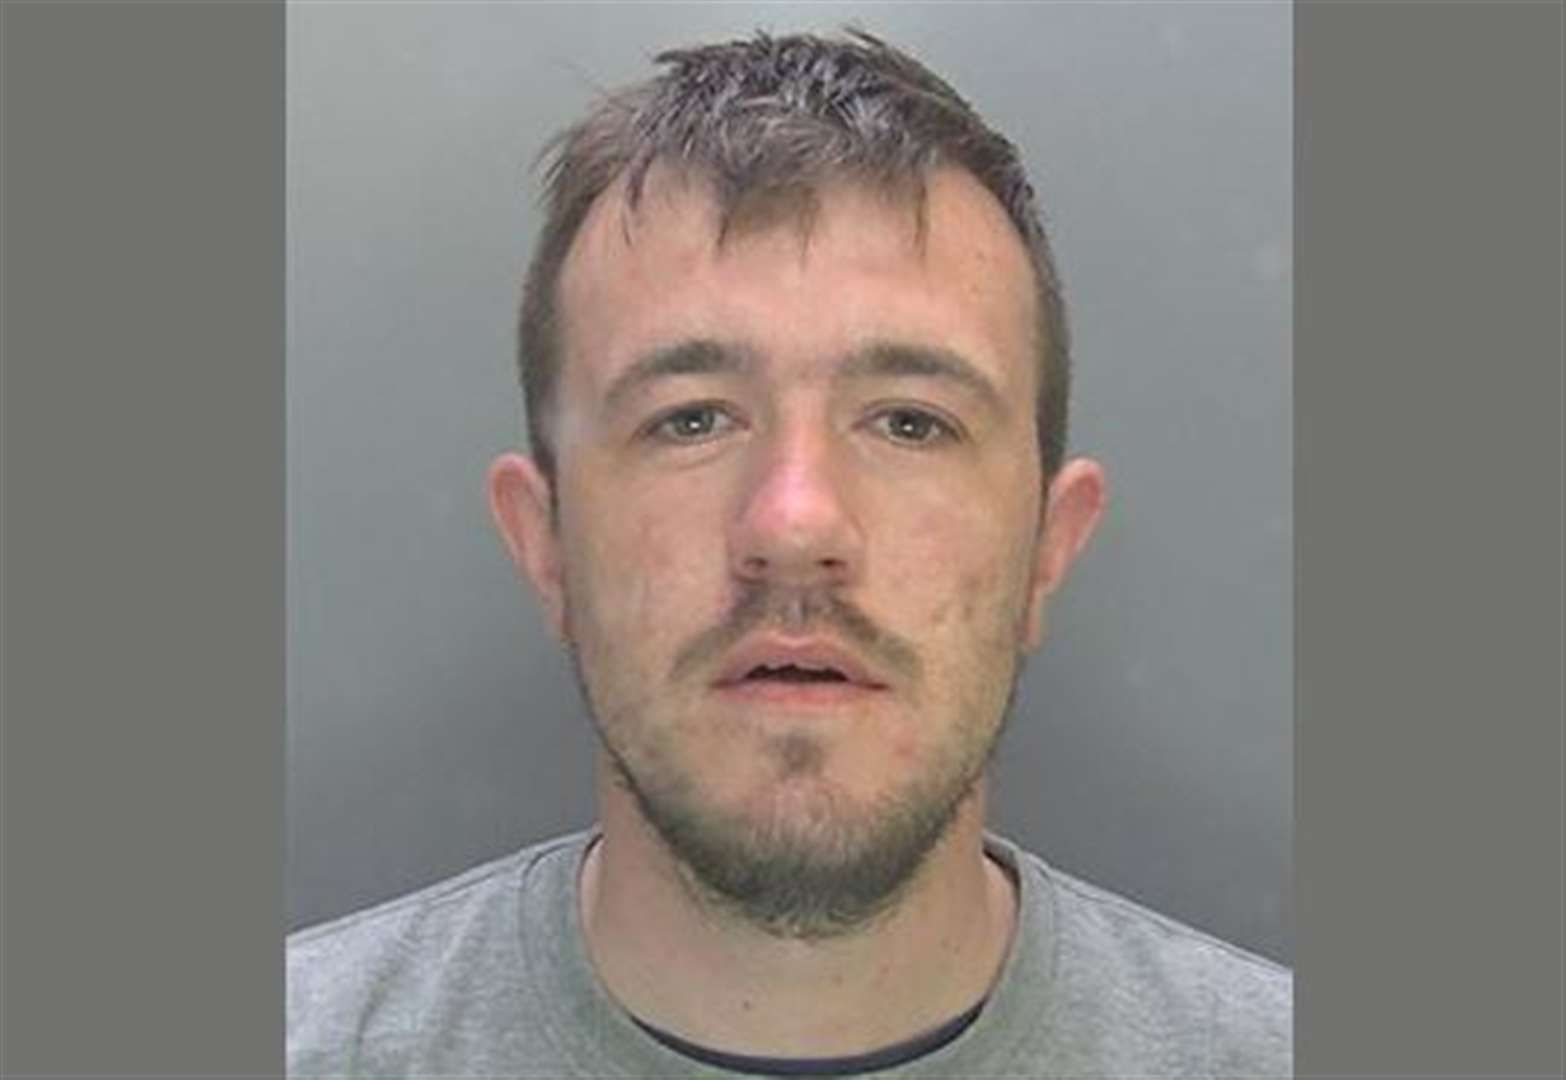 Soham man who threatened to stab his ex-girlfriend is jailed